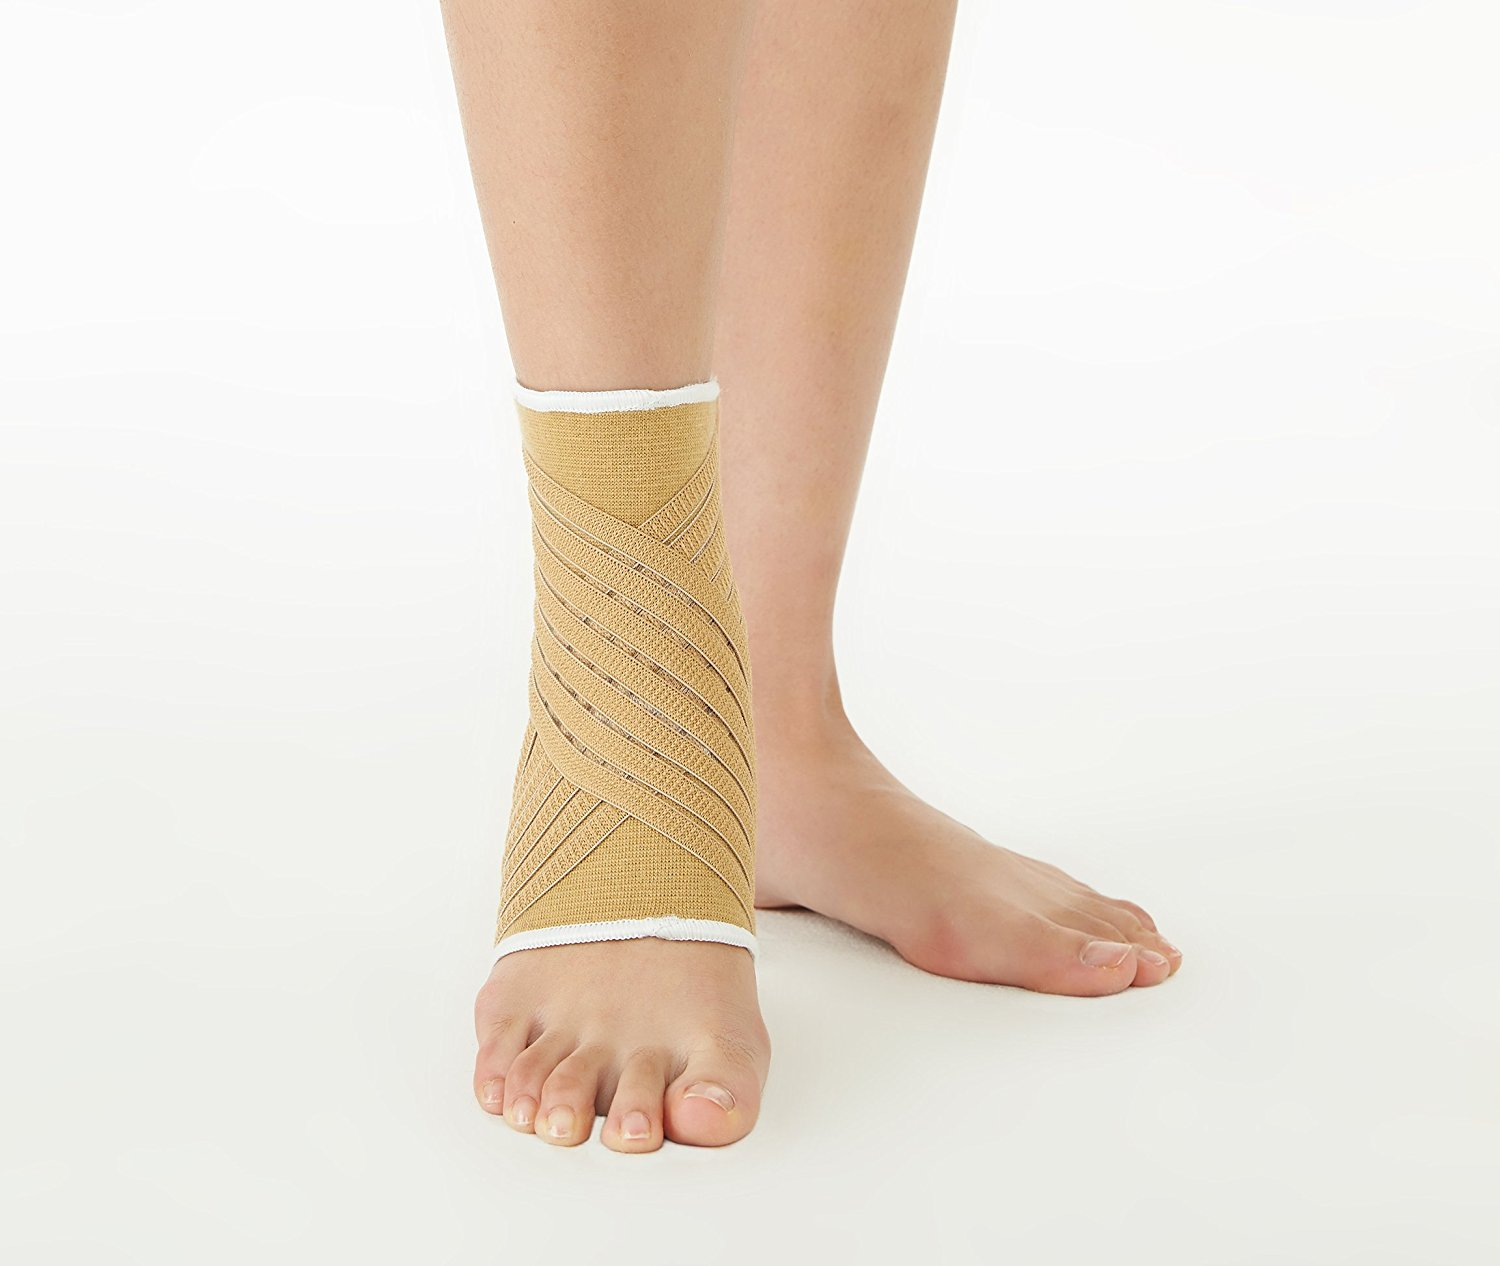 7d3406ffb8 Buy Soft AFO Foot Drop Brace | Ankle Foot Orthosis Keeps Foot Up for ...